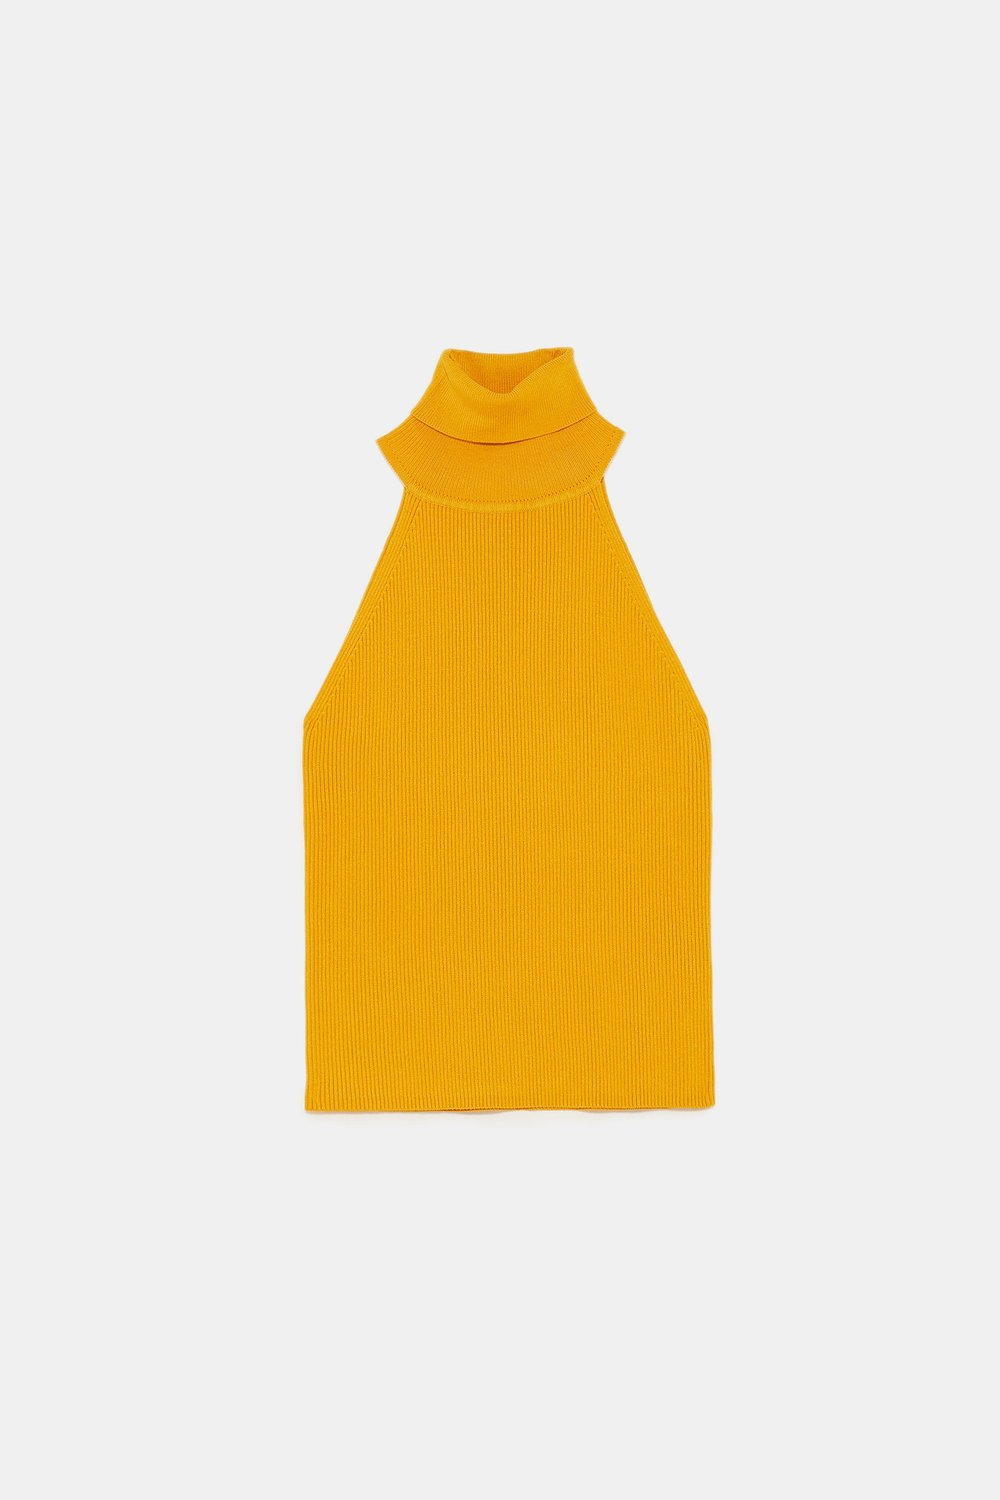 https://www.zara.com/ca/en/ribbed-halter-top-p03471101.html?v1=6546027&v2=1074565